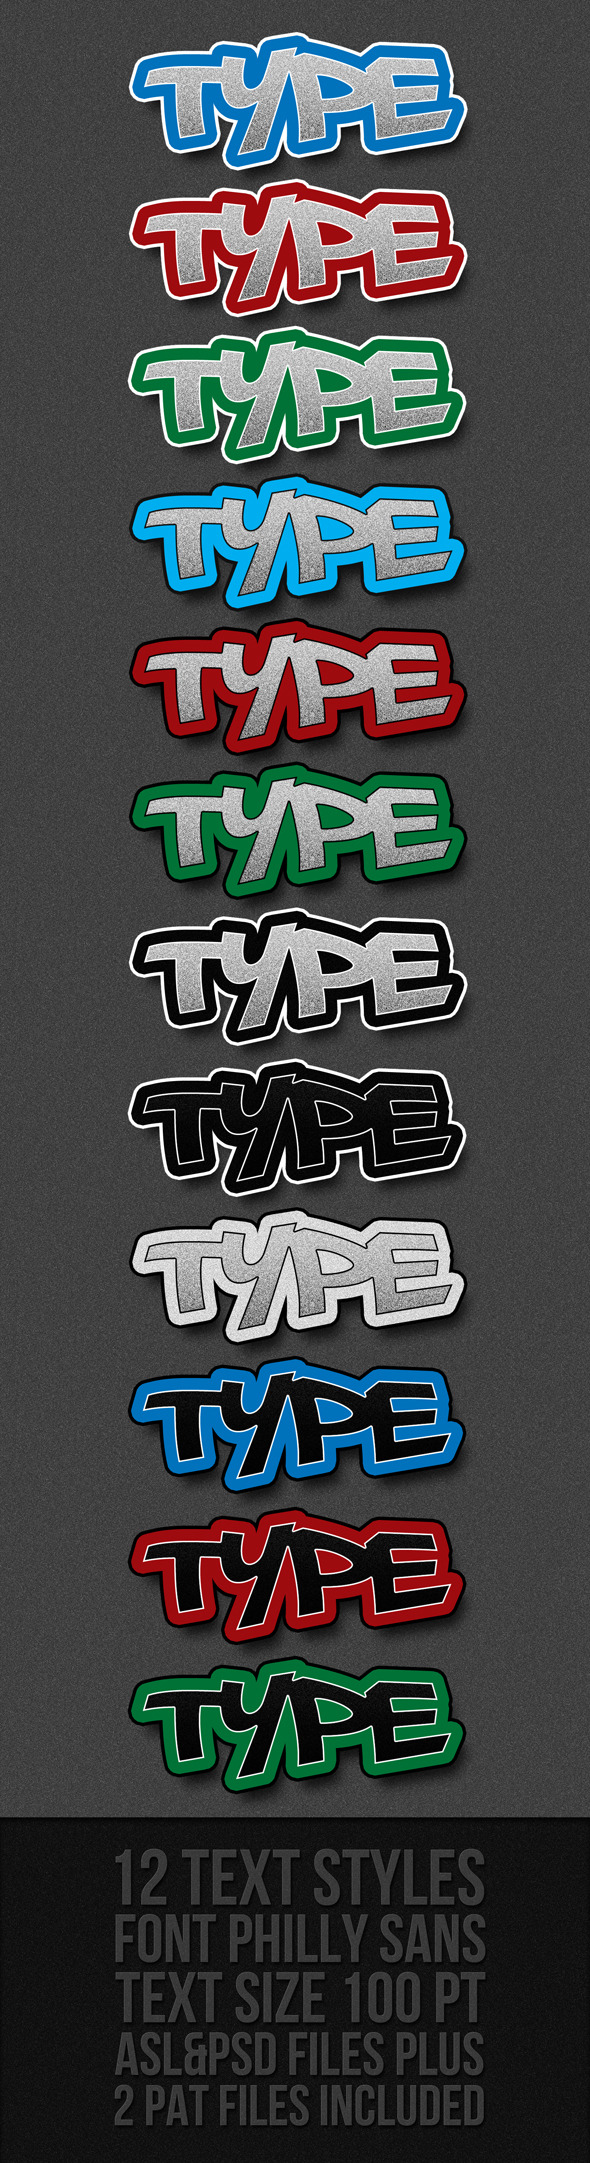 Graffiti Text Styles - Text Effects Styles